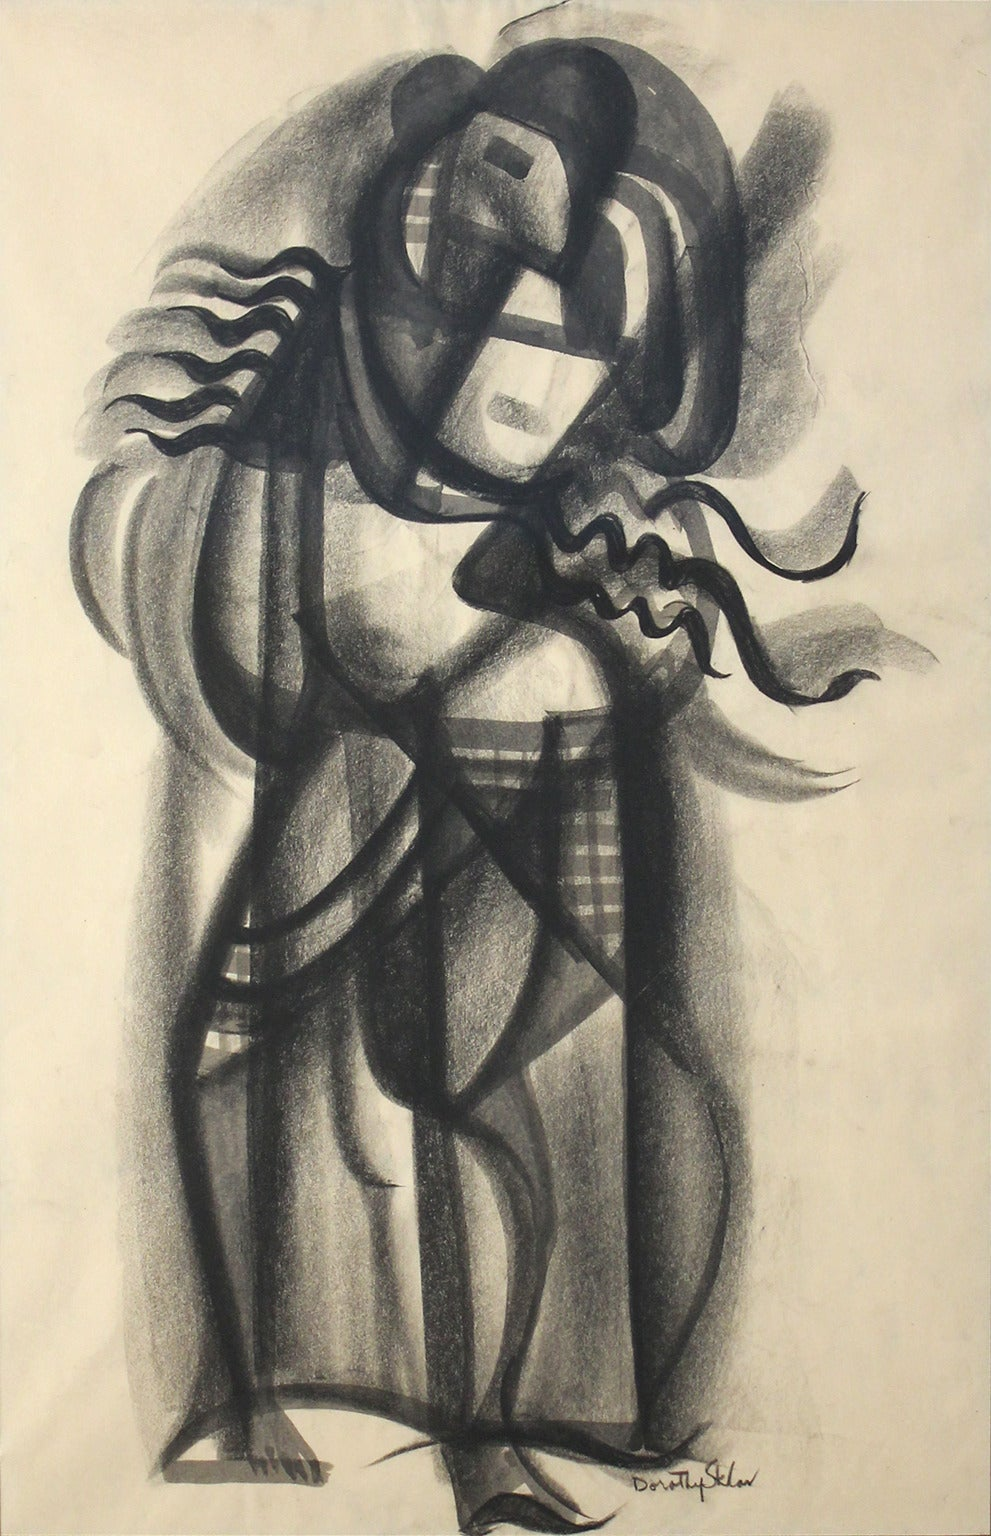 Rare cubist charcoal painting by Dorothy Sklar. Framed. Most likely dating to the 1930s or early 1940s.  Dimensions: 31